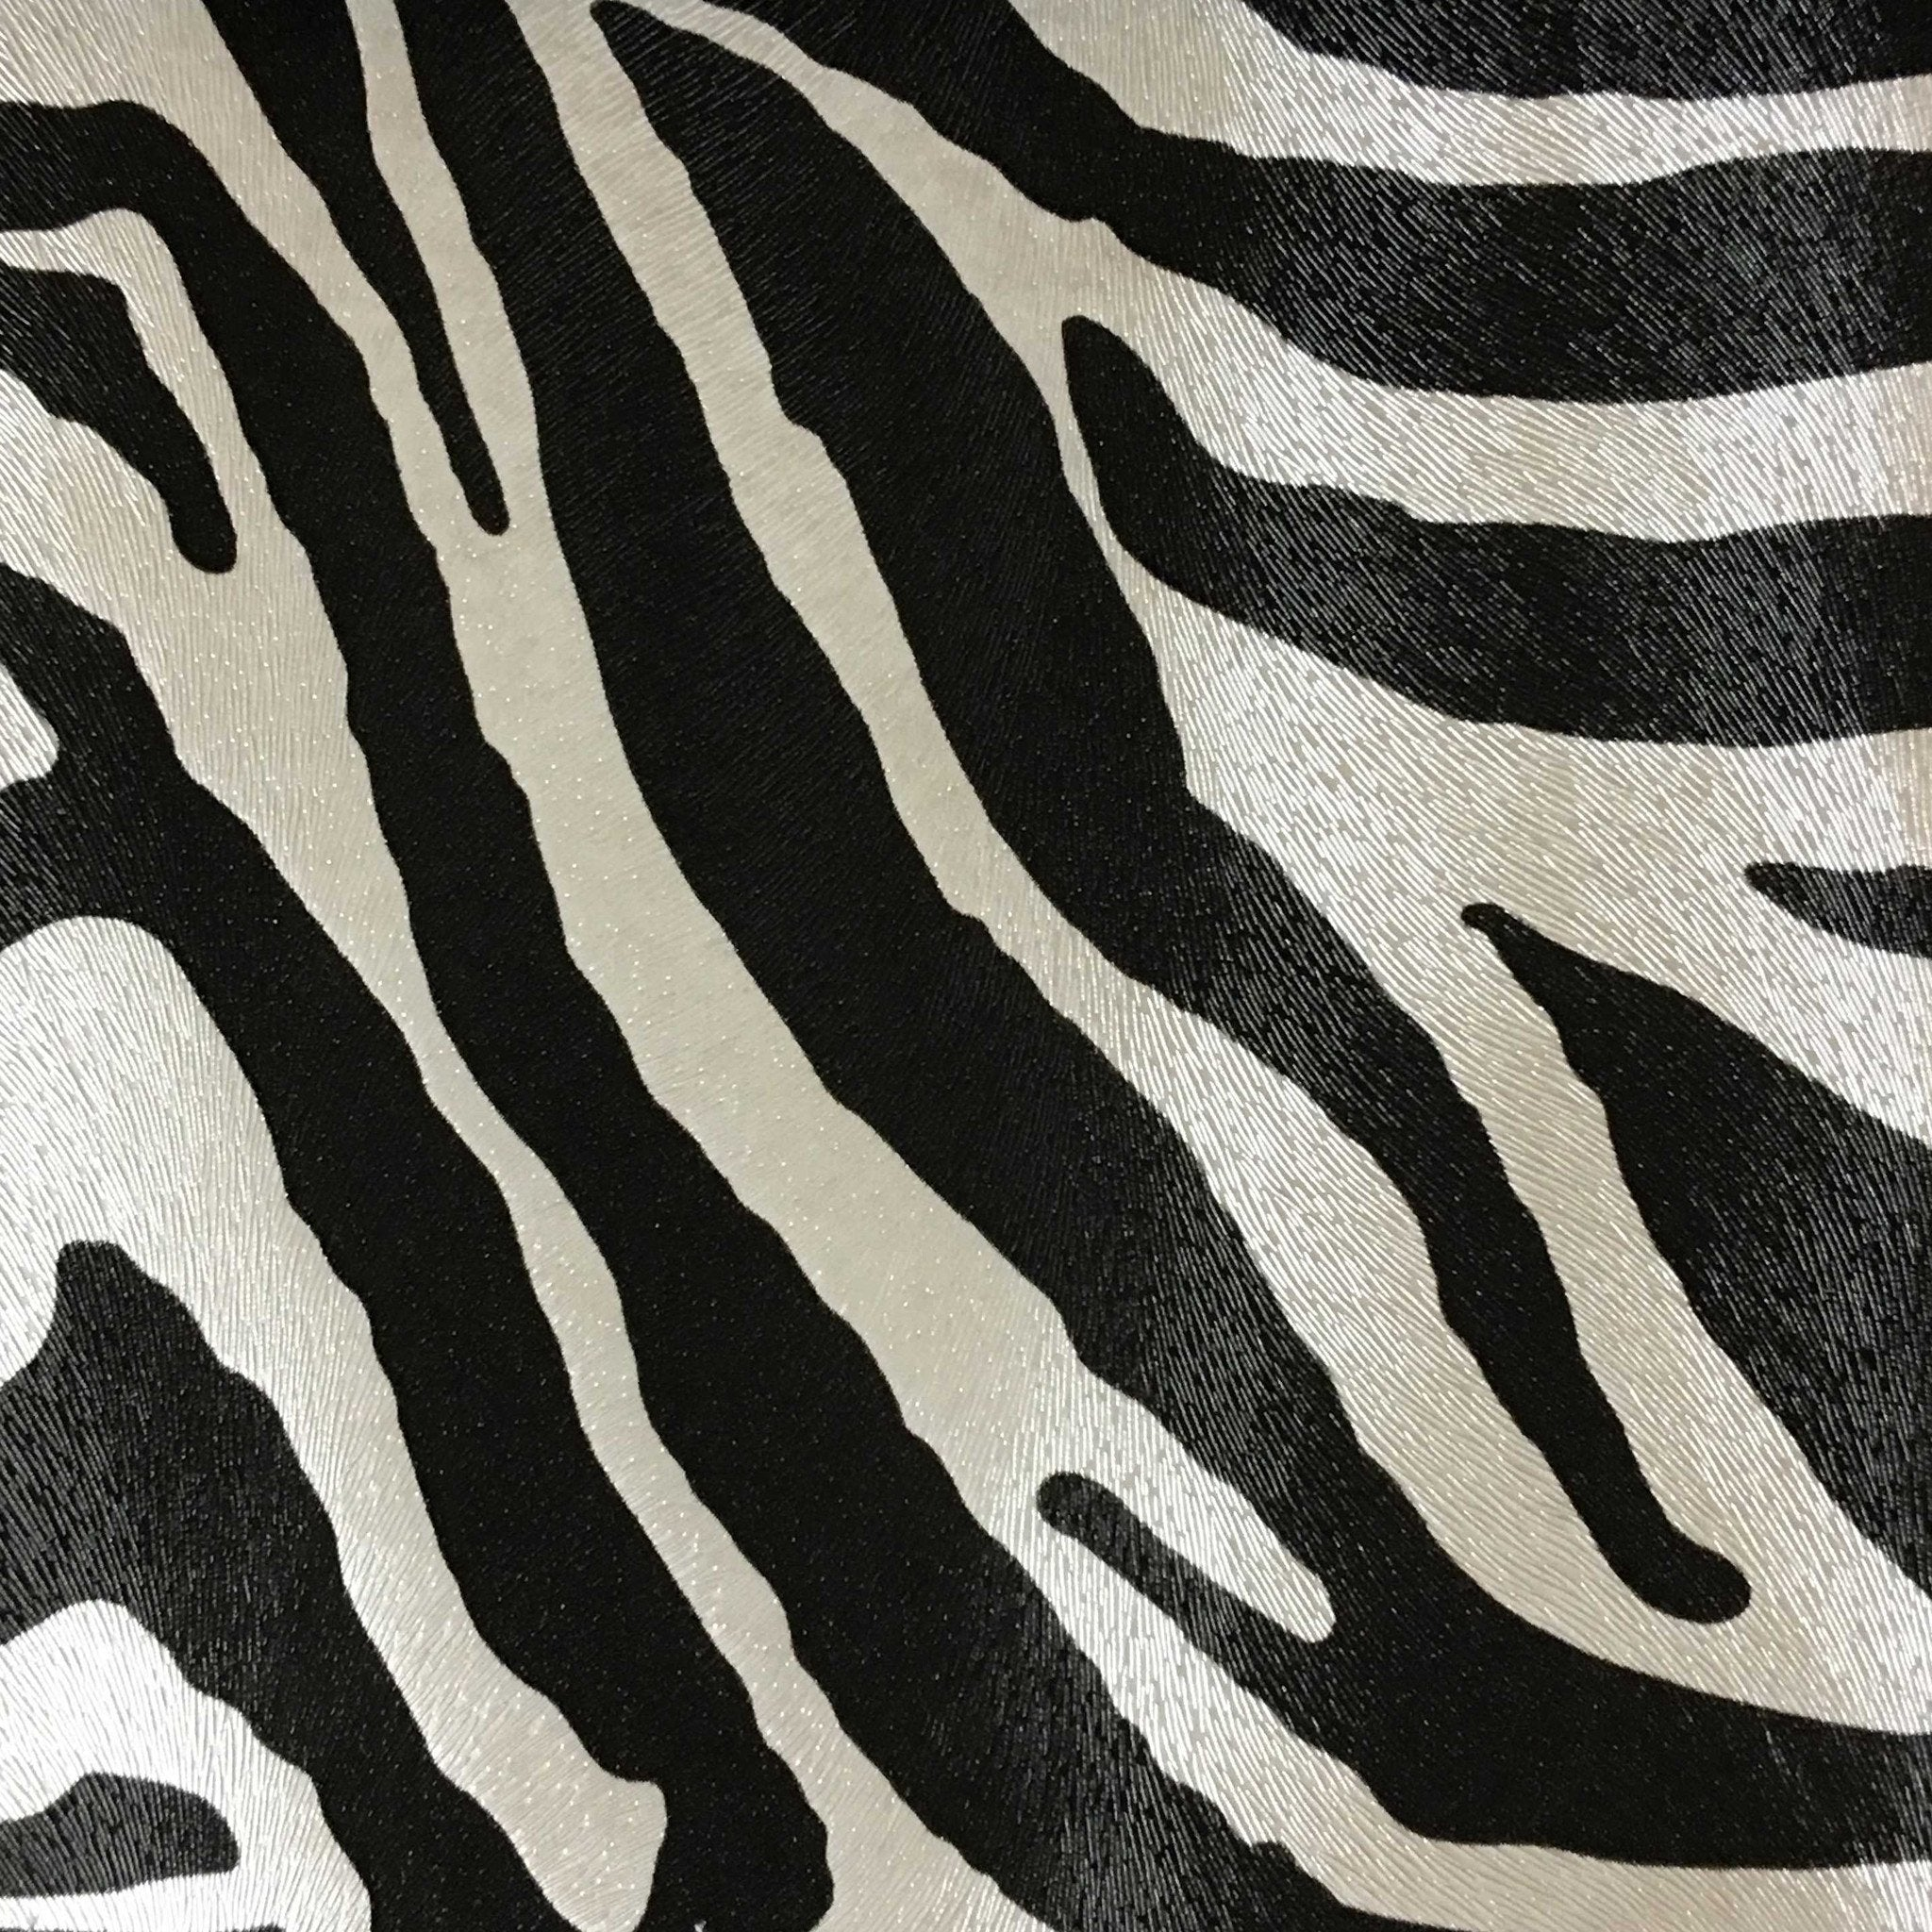 animal print upholstery fabric by the yard roselawnlutheran - Home Decor Fabrics By The Yard